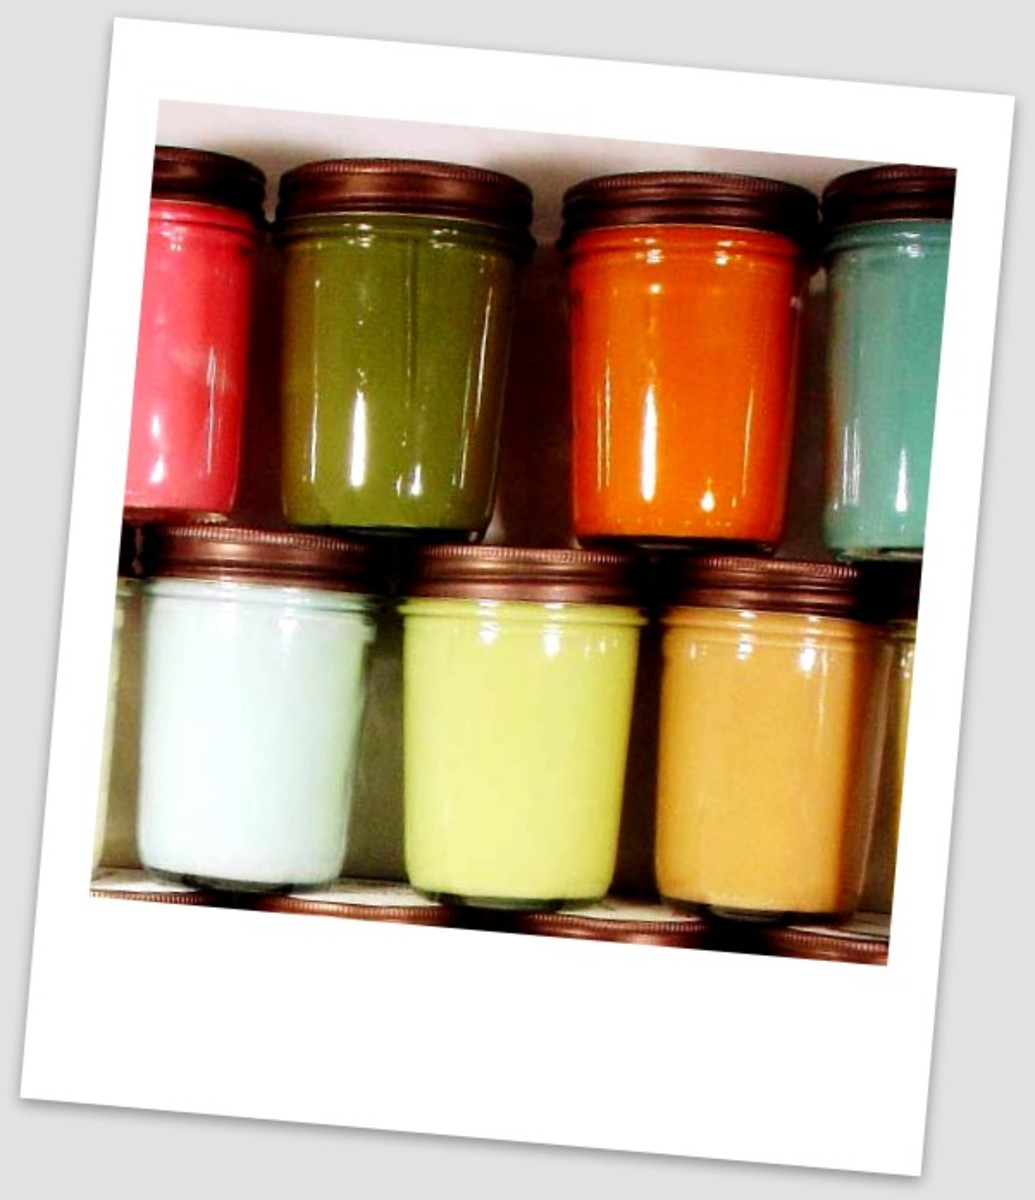 Homemade candles in jars